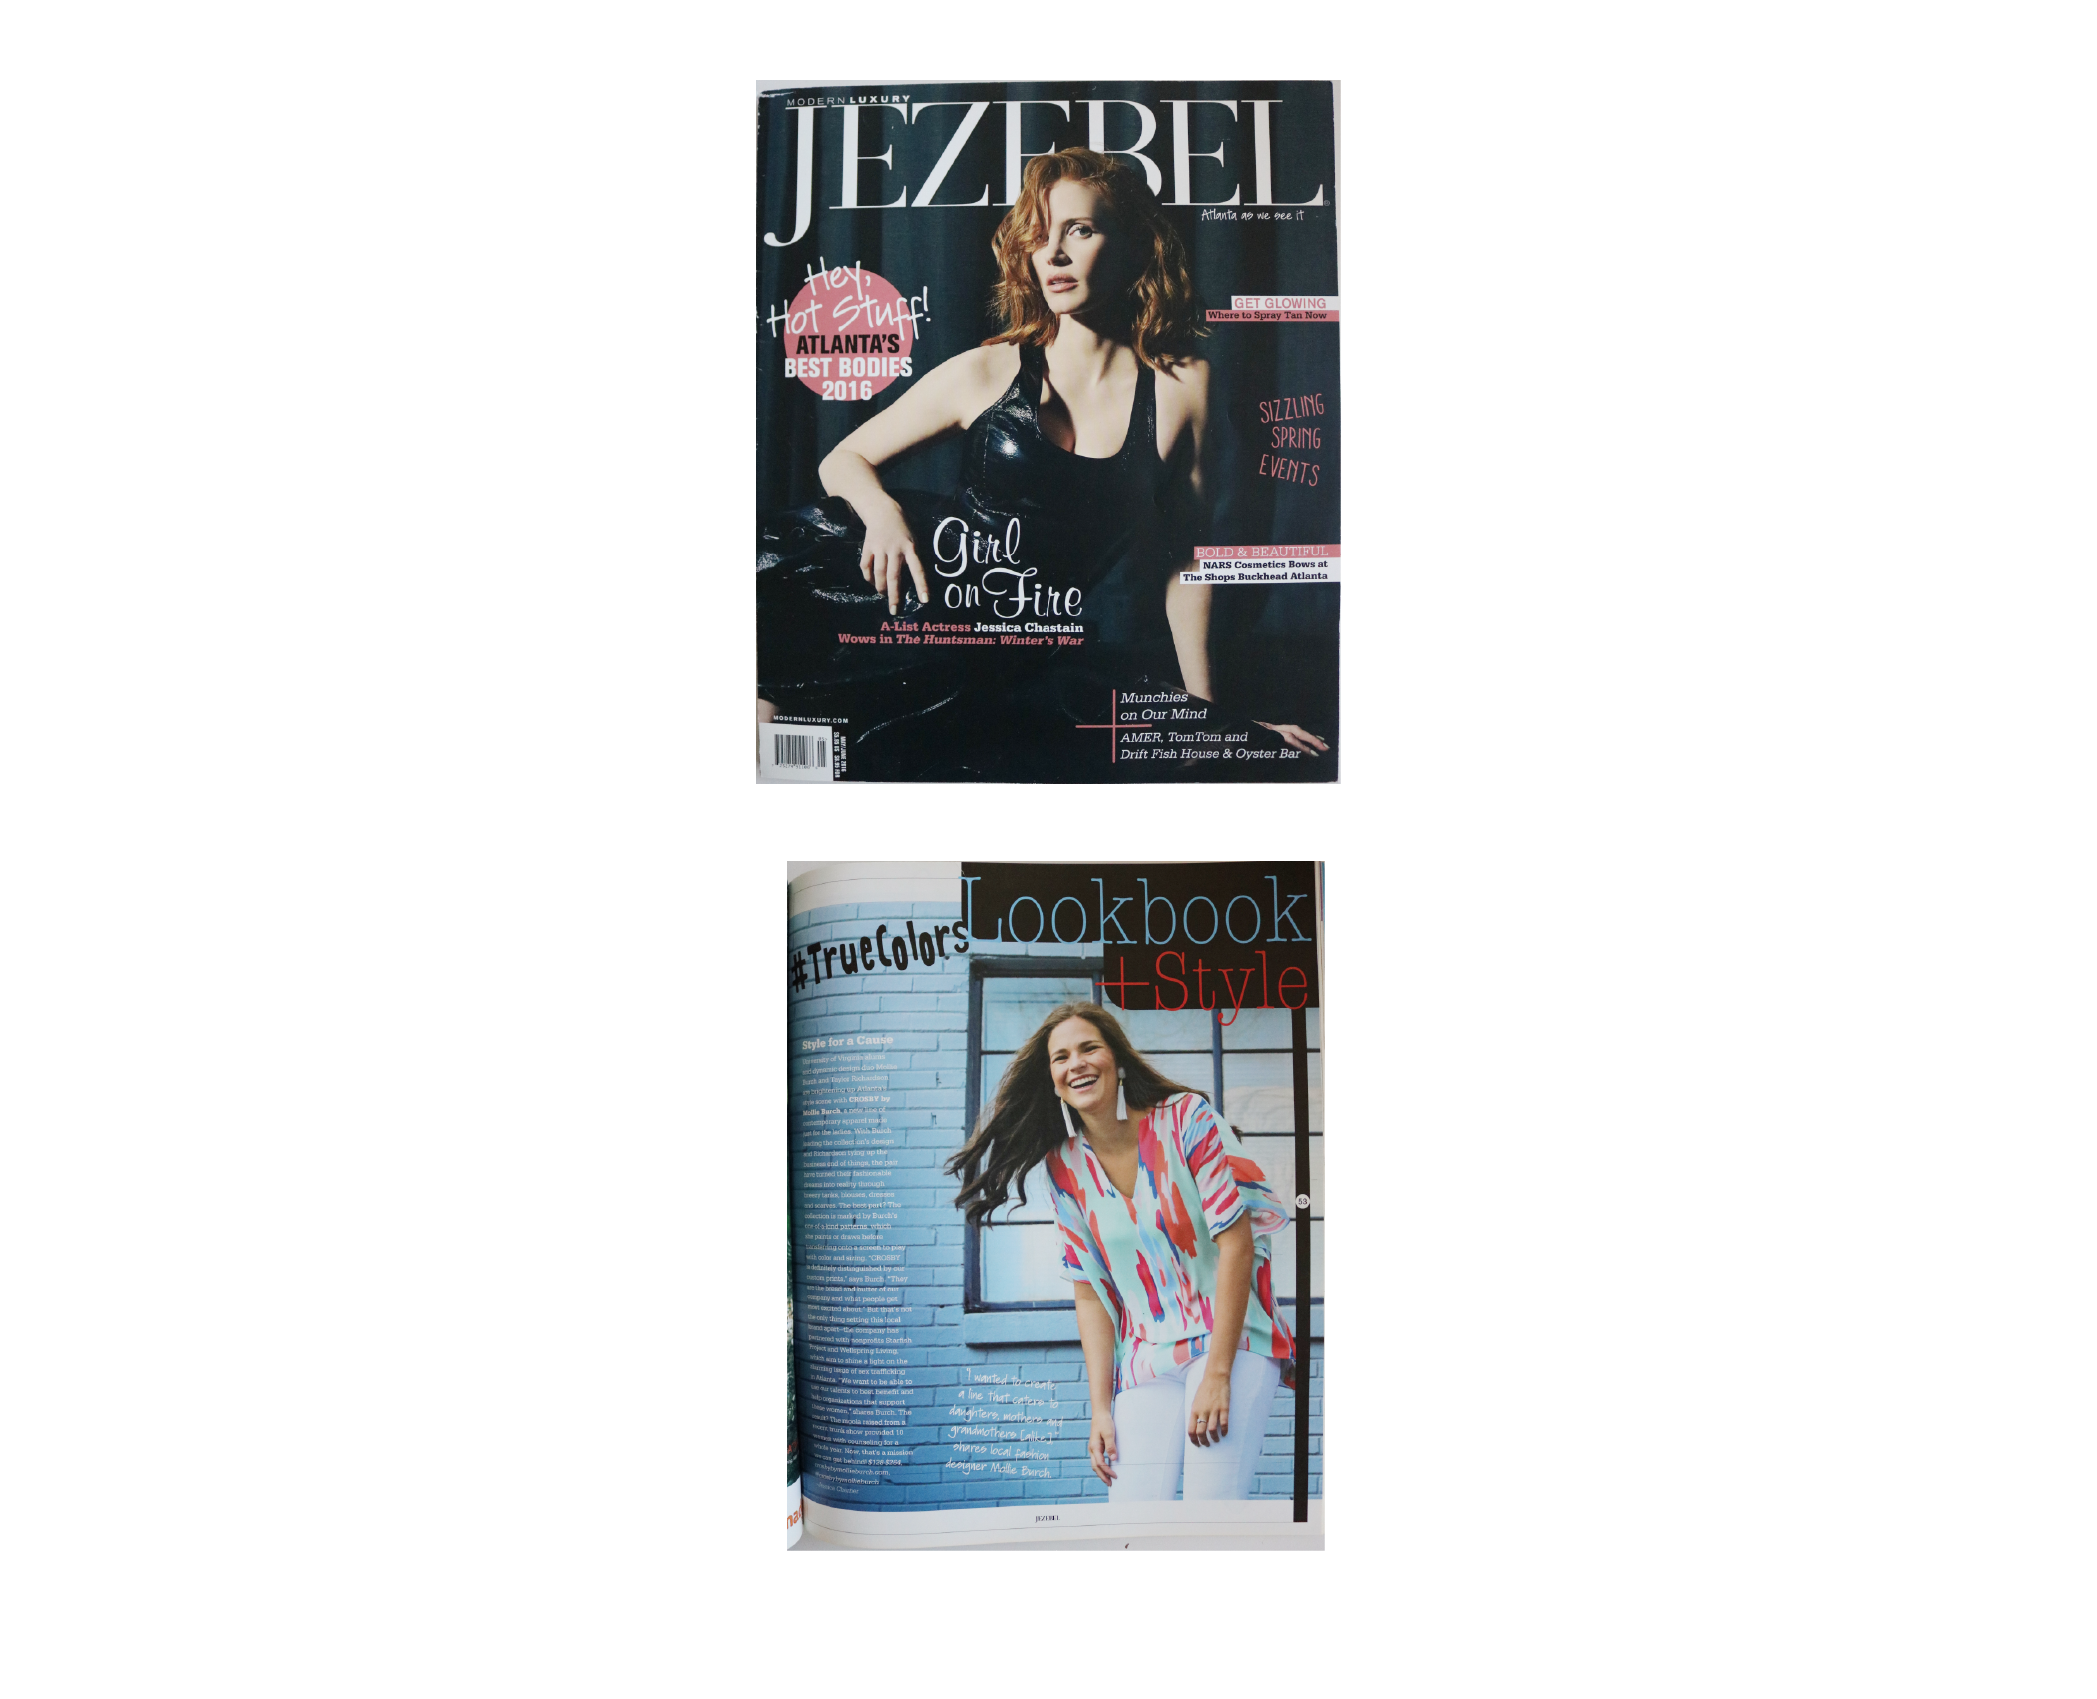 Jezebel | May 2016 | Cover and Style for Cause magazine article pages